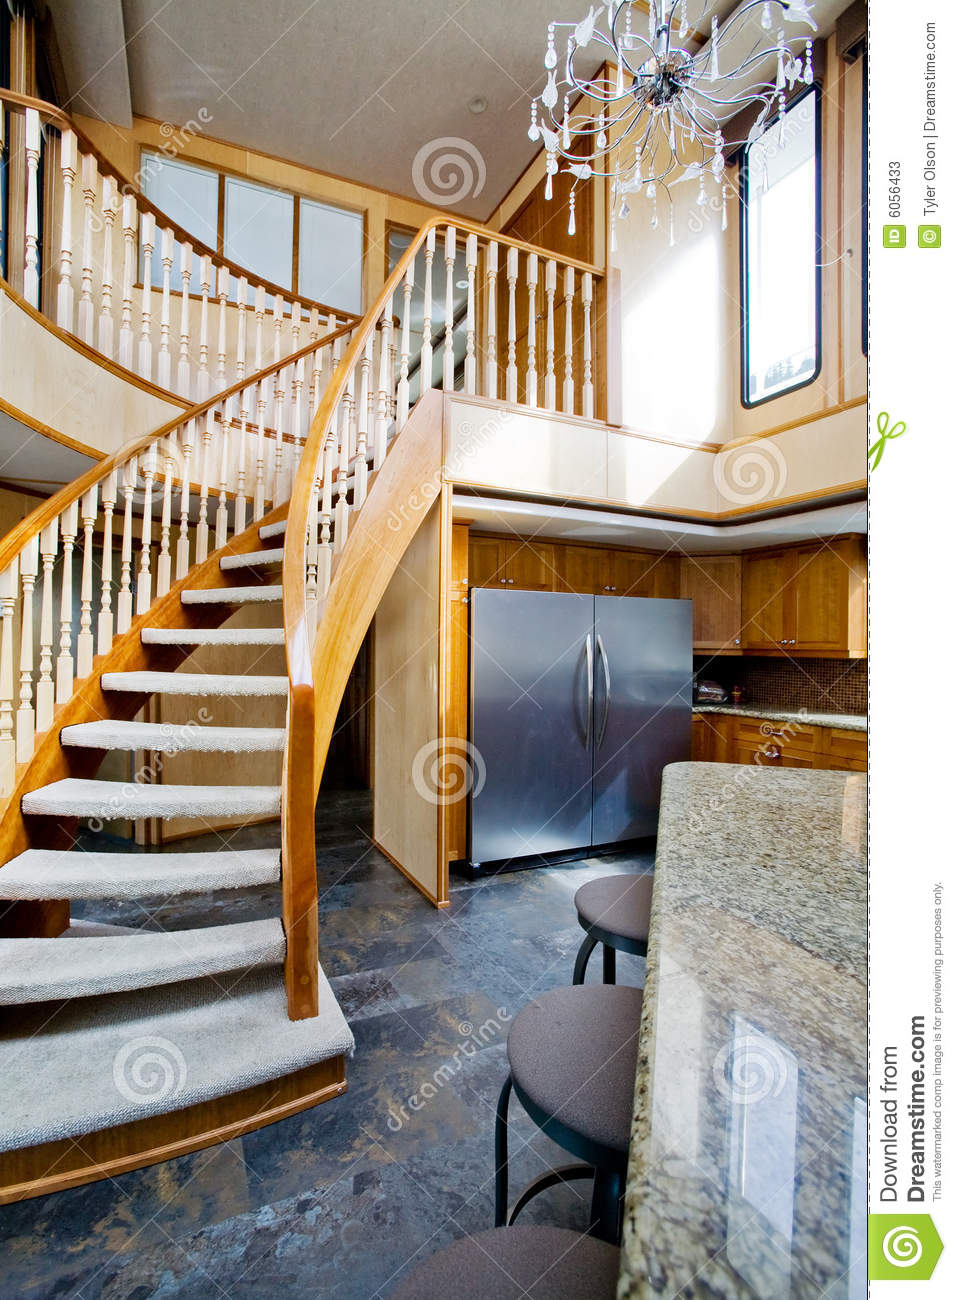 Luxury yacht interior stock image. Image of stair, staircase - 6056433